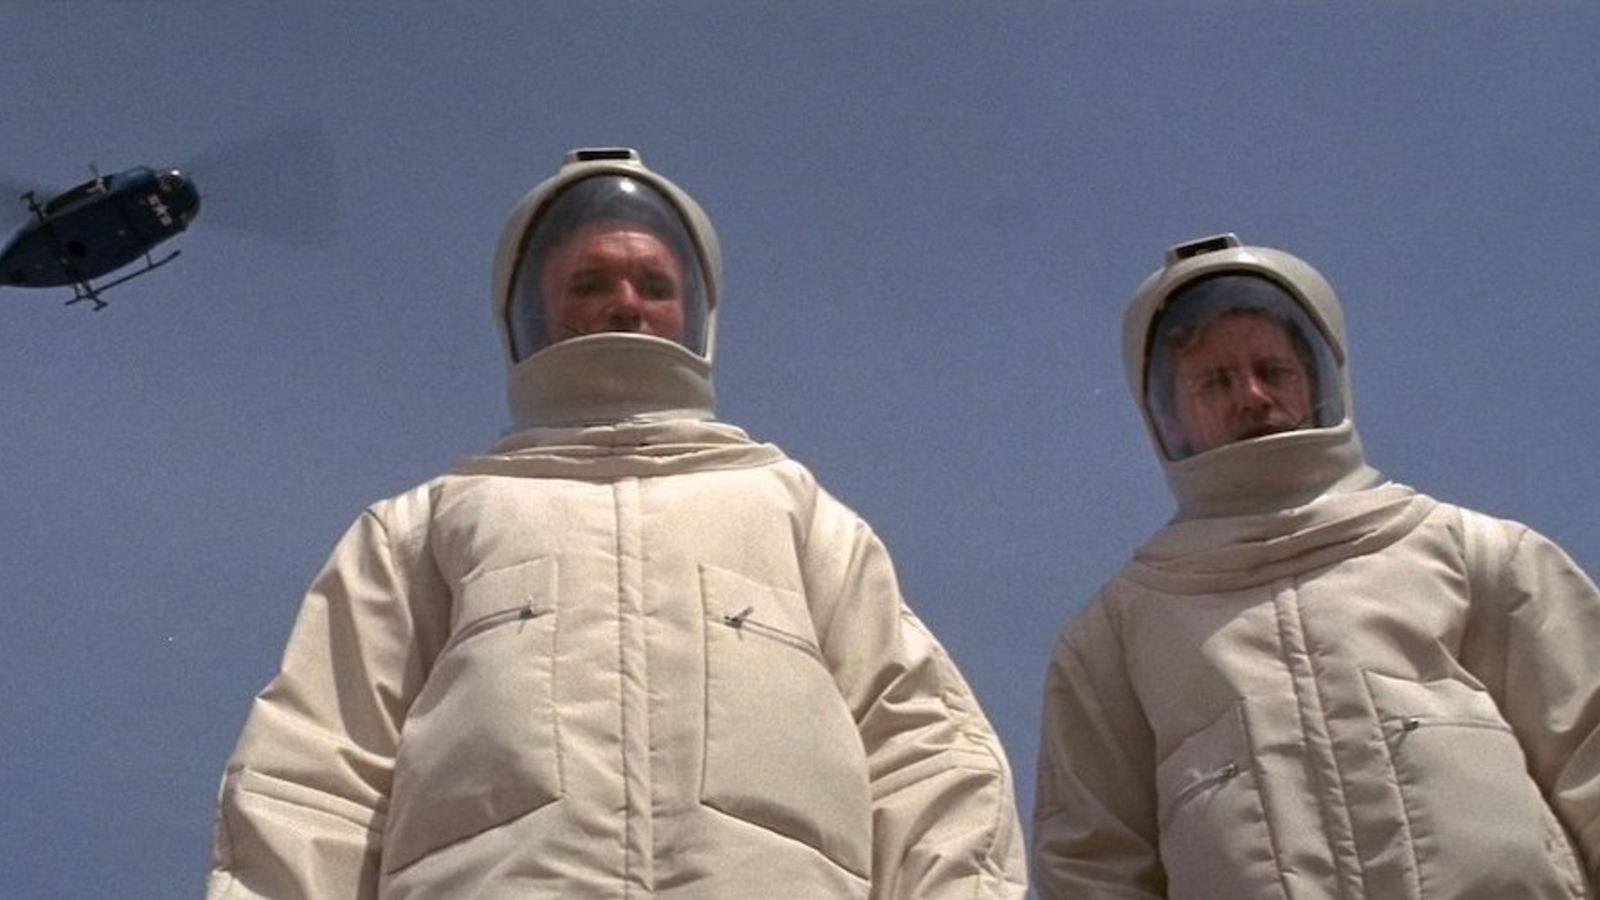 'The Andromeda Strain' defies many sci-fi tropes while telling a tight story.